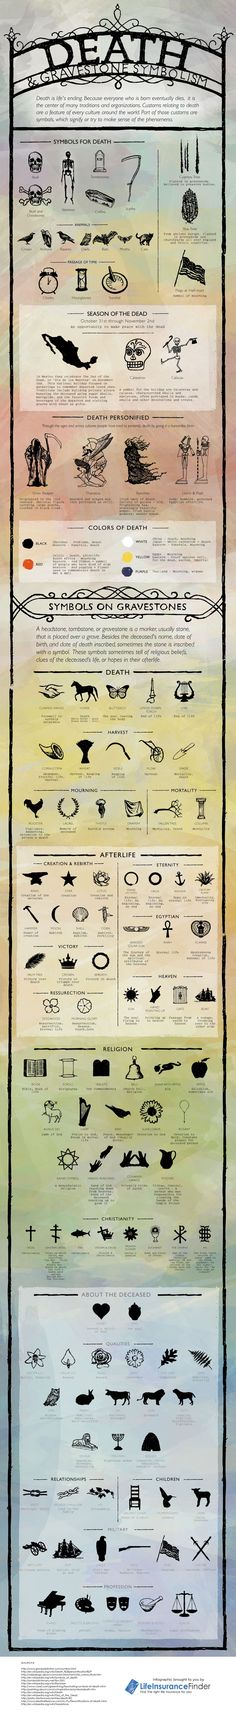 Find out the meanings of the different death symbols found in different cultures and religions across the globe in this detailed infographic. symbol Death and Gravestone Symbolism {Infographic